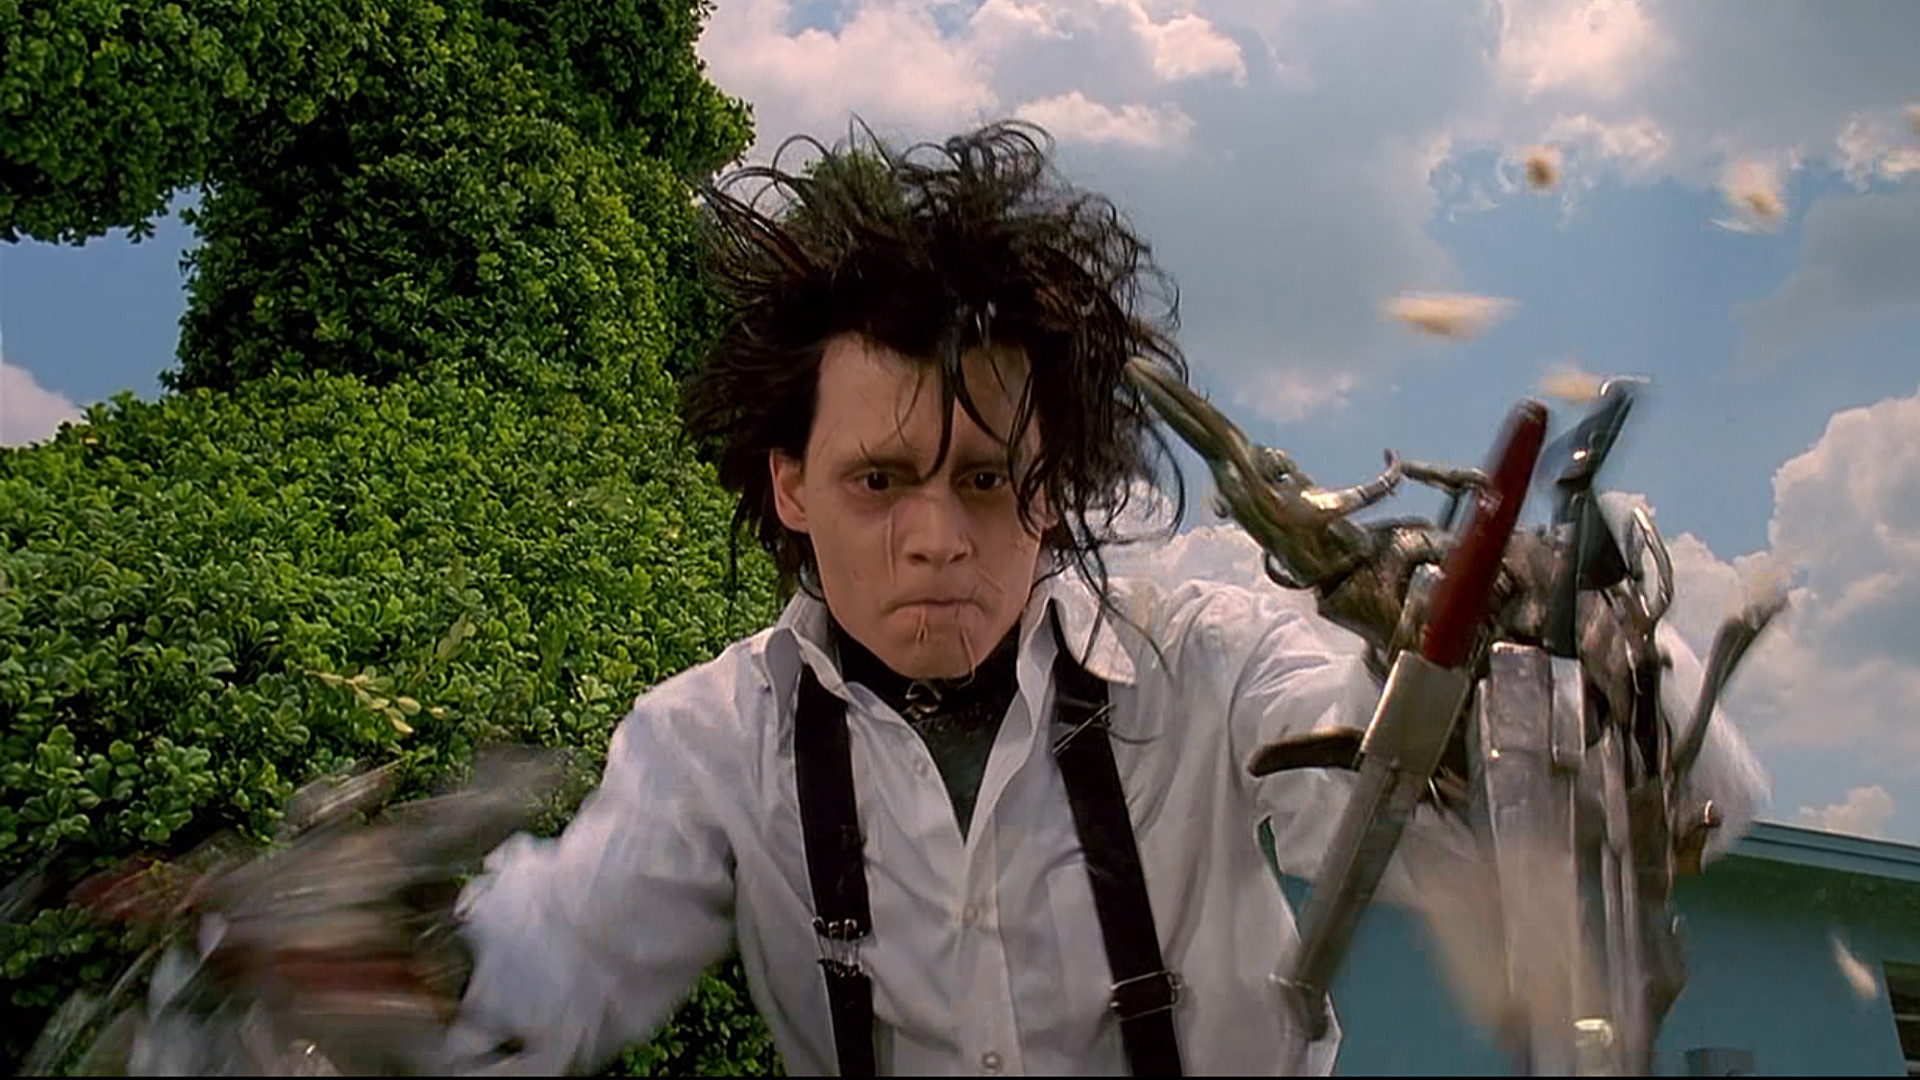 edward scissor hands vs tkam